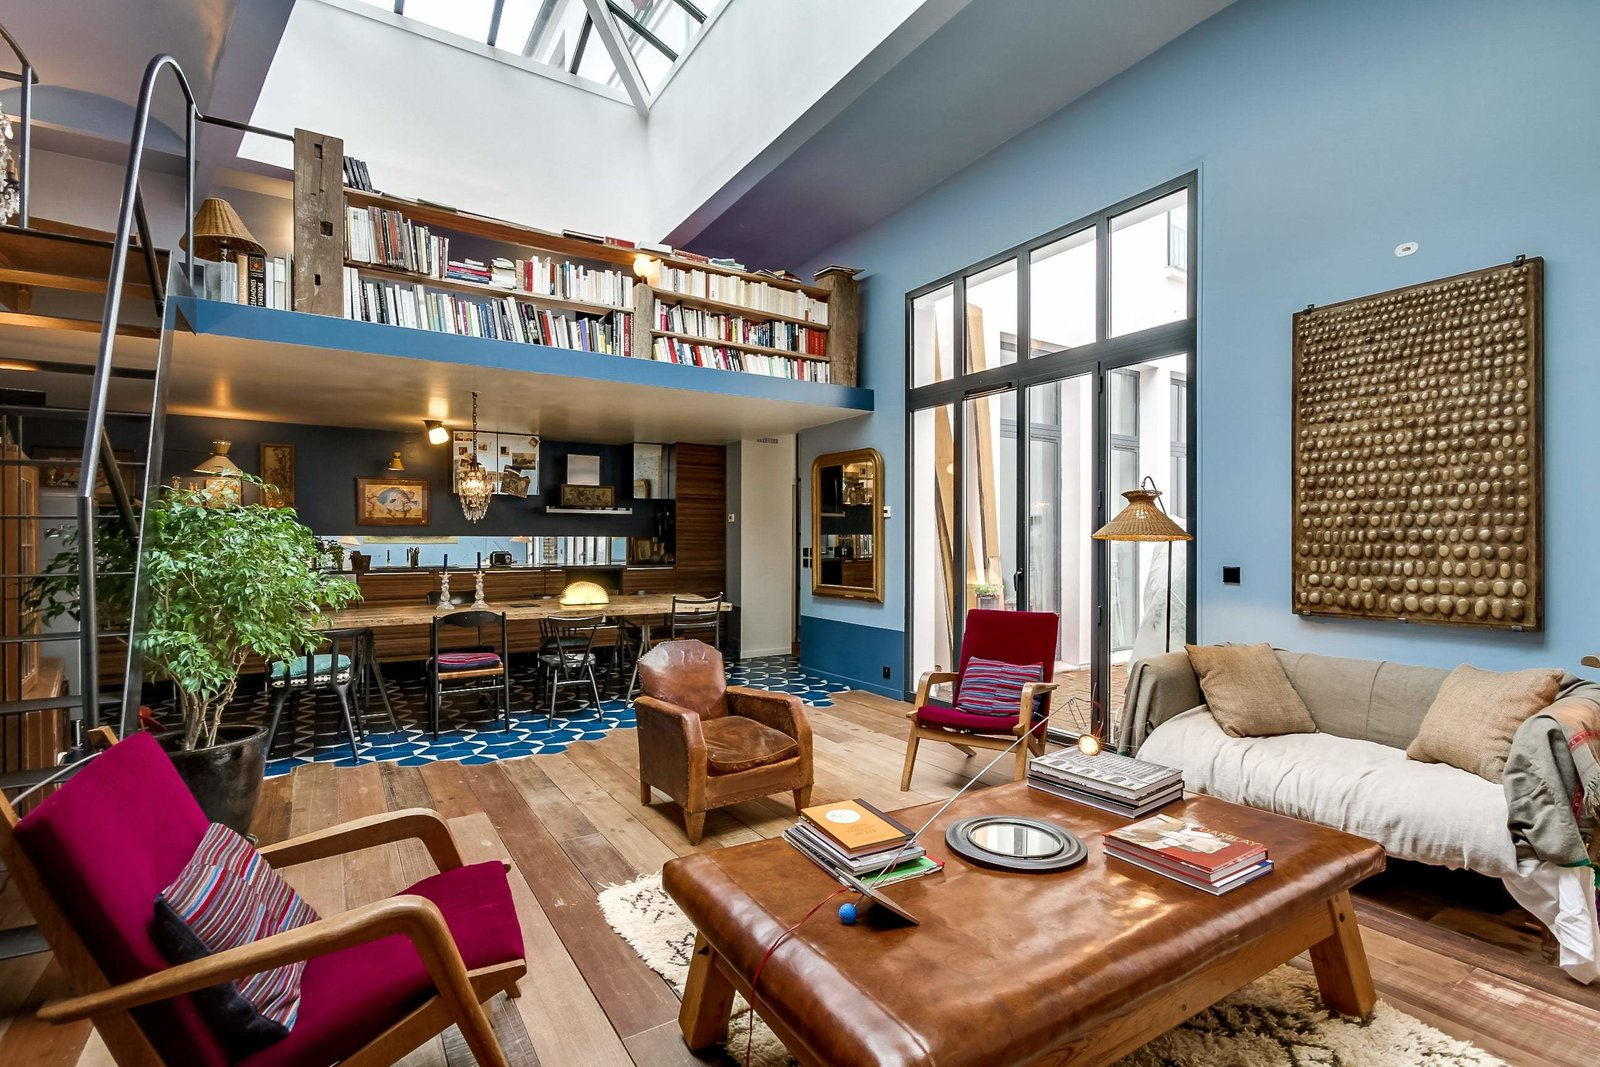 Living Room, Coffee Tables, Sofa, Chair, Bookcase, Floor Lighting, and Medium Hardwood Floor  Photo 4 of 9 in 8 Charming Parisian Apartments You'll Want to Book Right Now